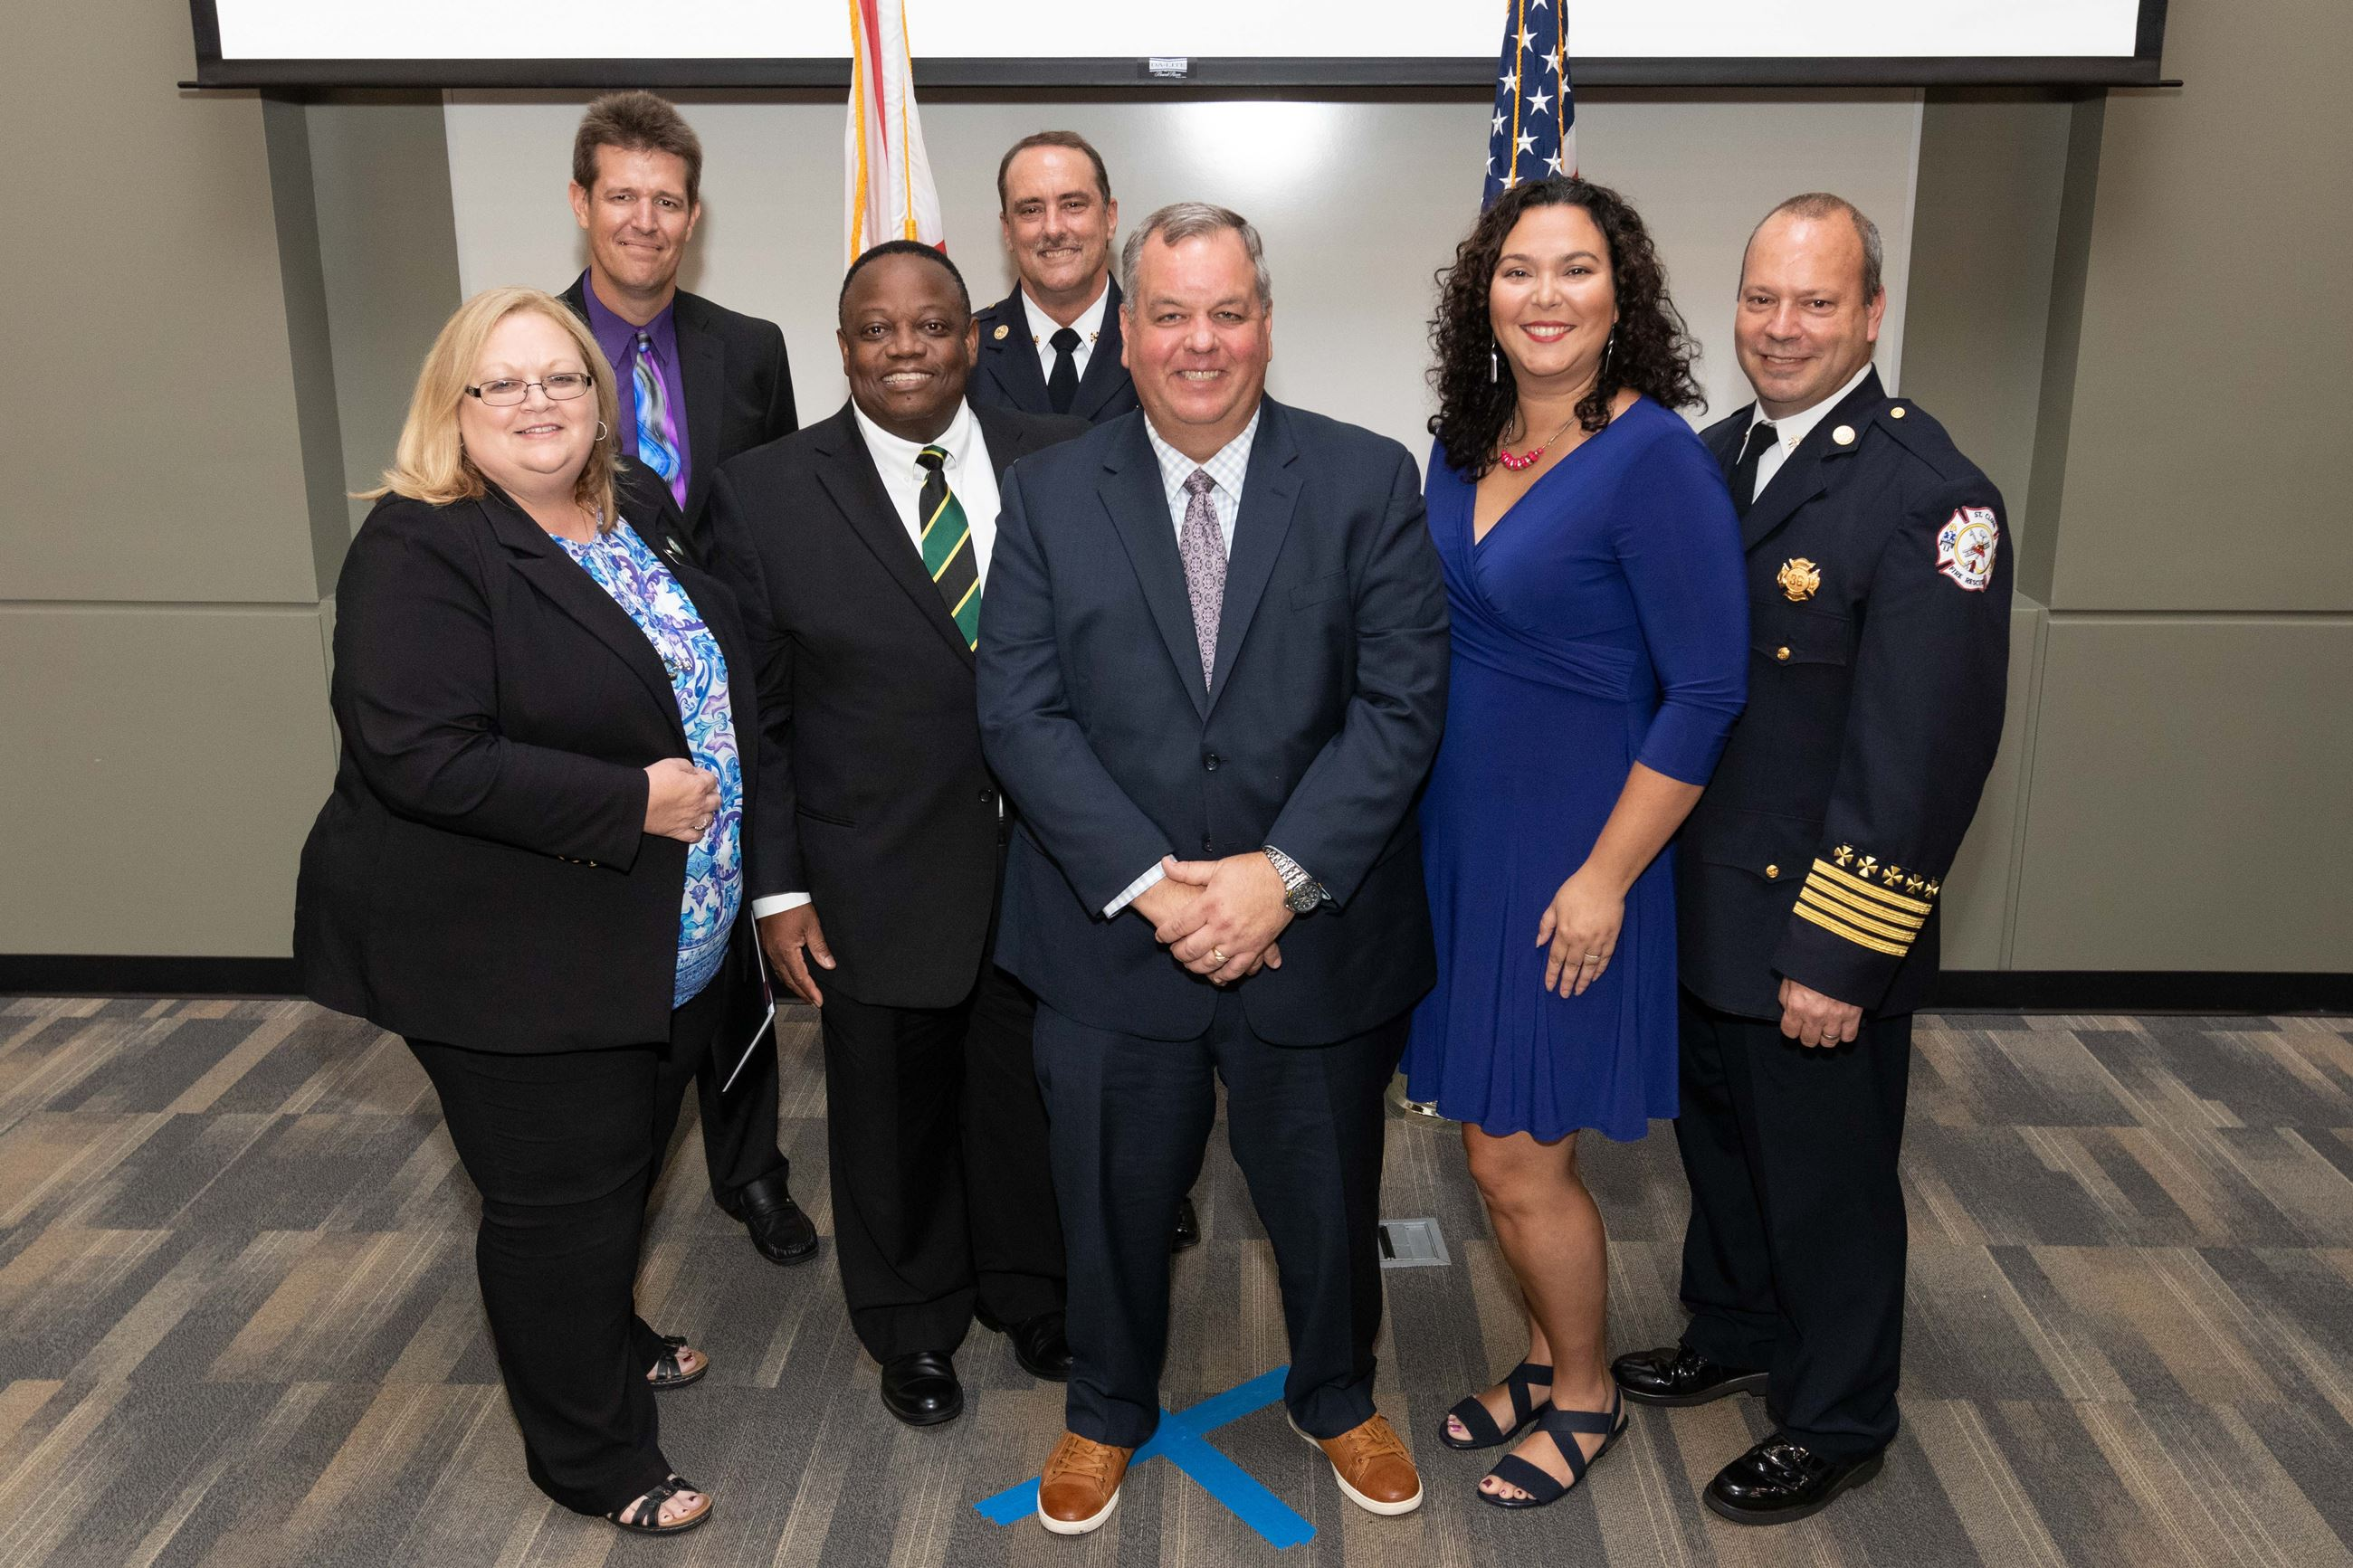 St. Cloud City Leaders at CPM Graduation